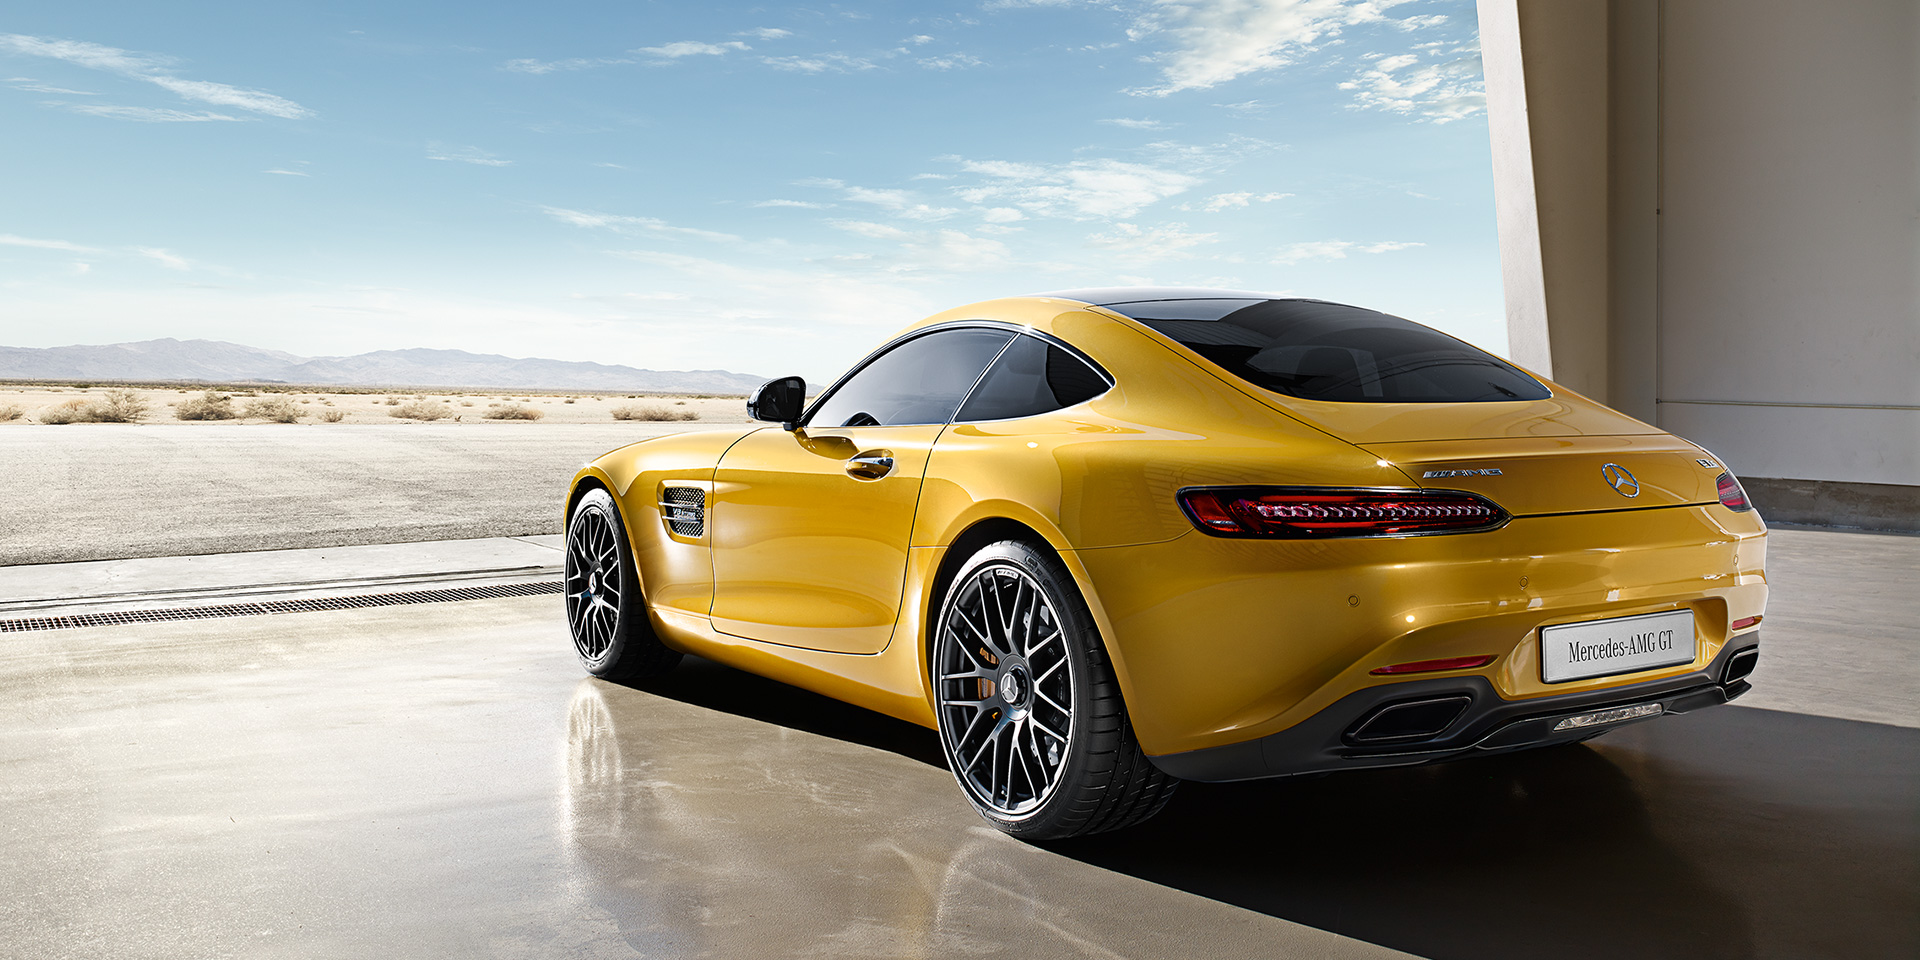 Mercedes Amg Rent Mercedes Amg Gt Cannes Mercedes Amg Gt Cannes Rental Rent